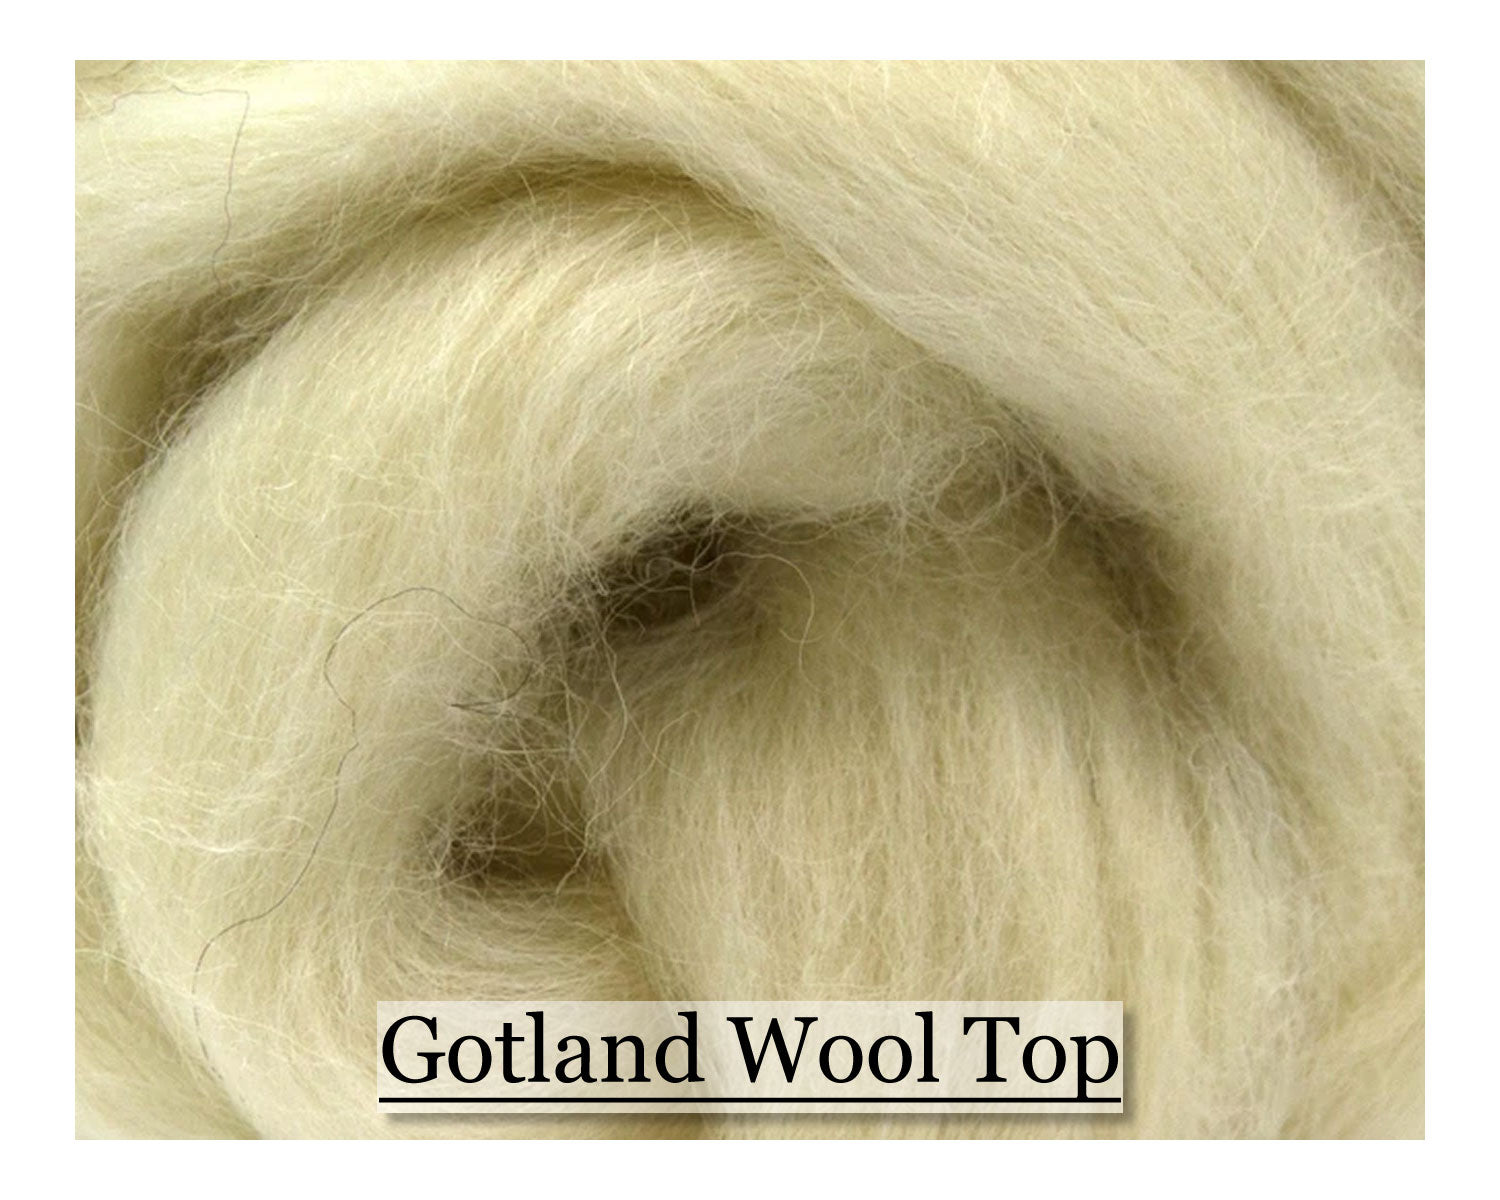 White Gotland Wool Top - 1, 2 or 4 oz size